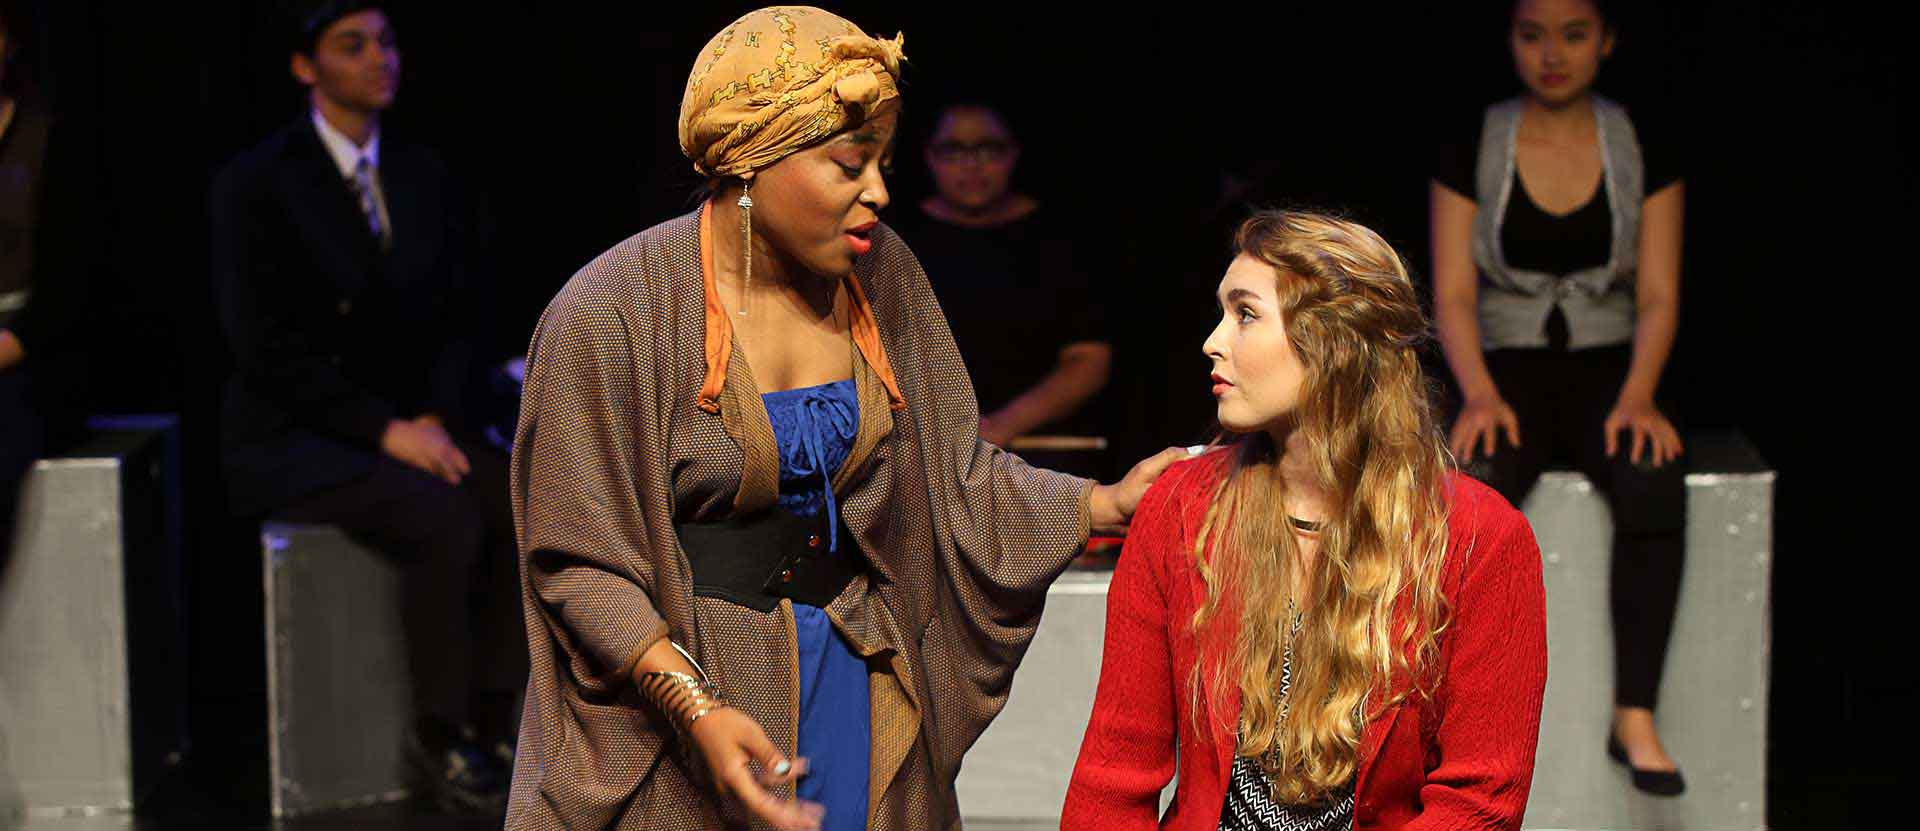 Theatre production of students acting. One women leans sympathetic arm on woman sitting down and upset.